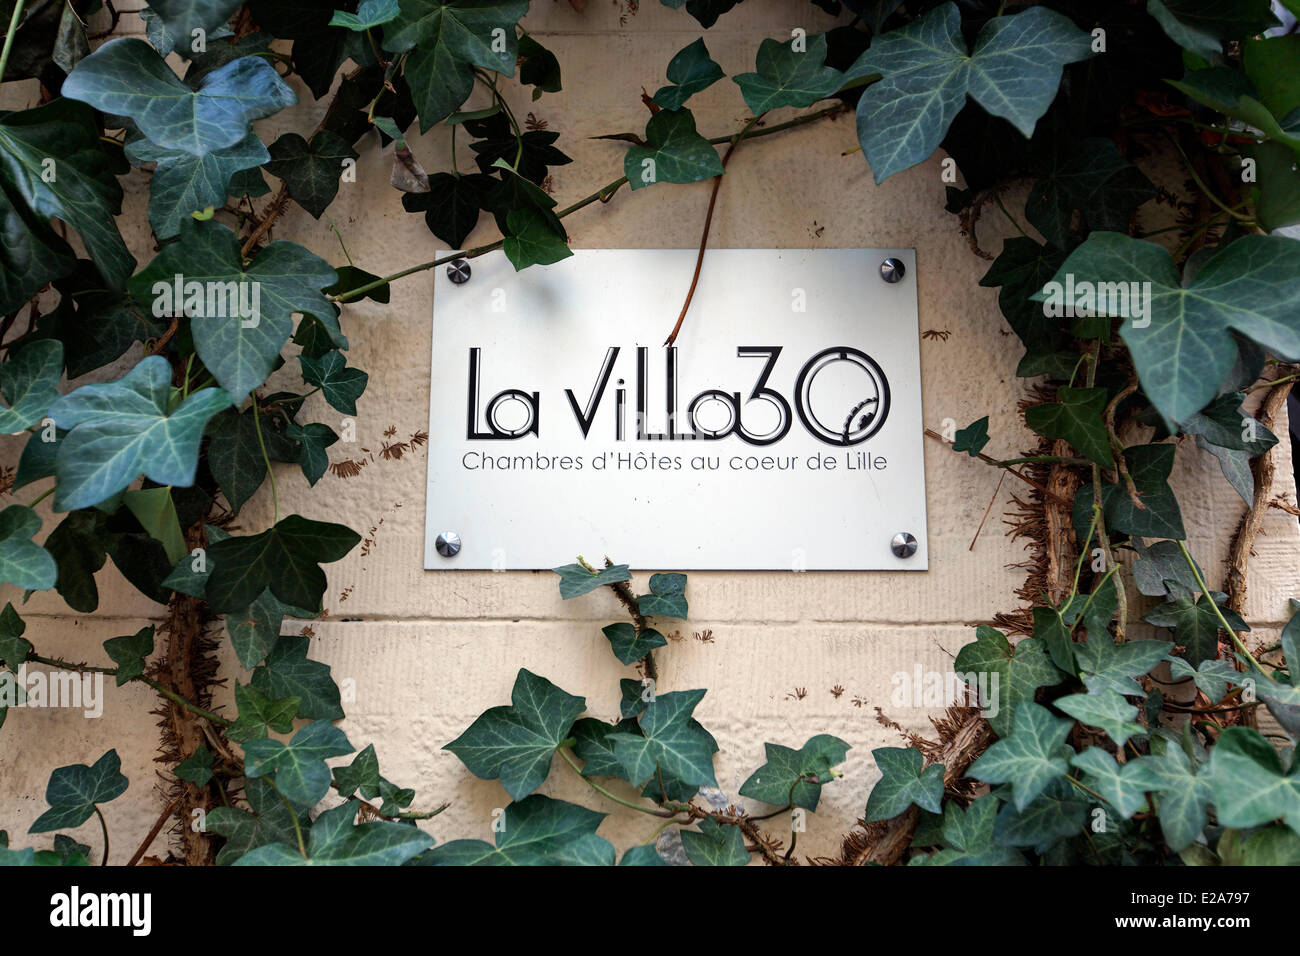 France, Nord, Lille, La Villa 30, a house with floors transformed into bed and breakfast right in the heart of Lille - Stock Image